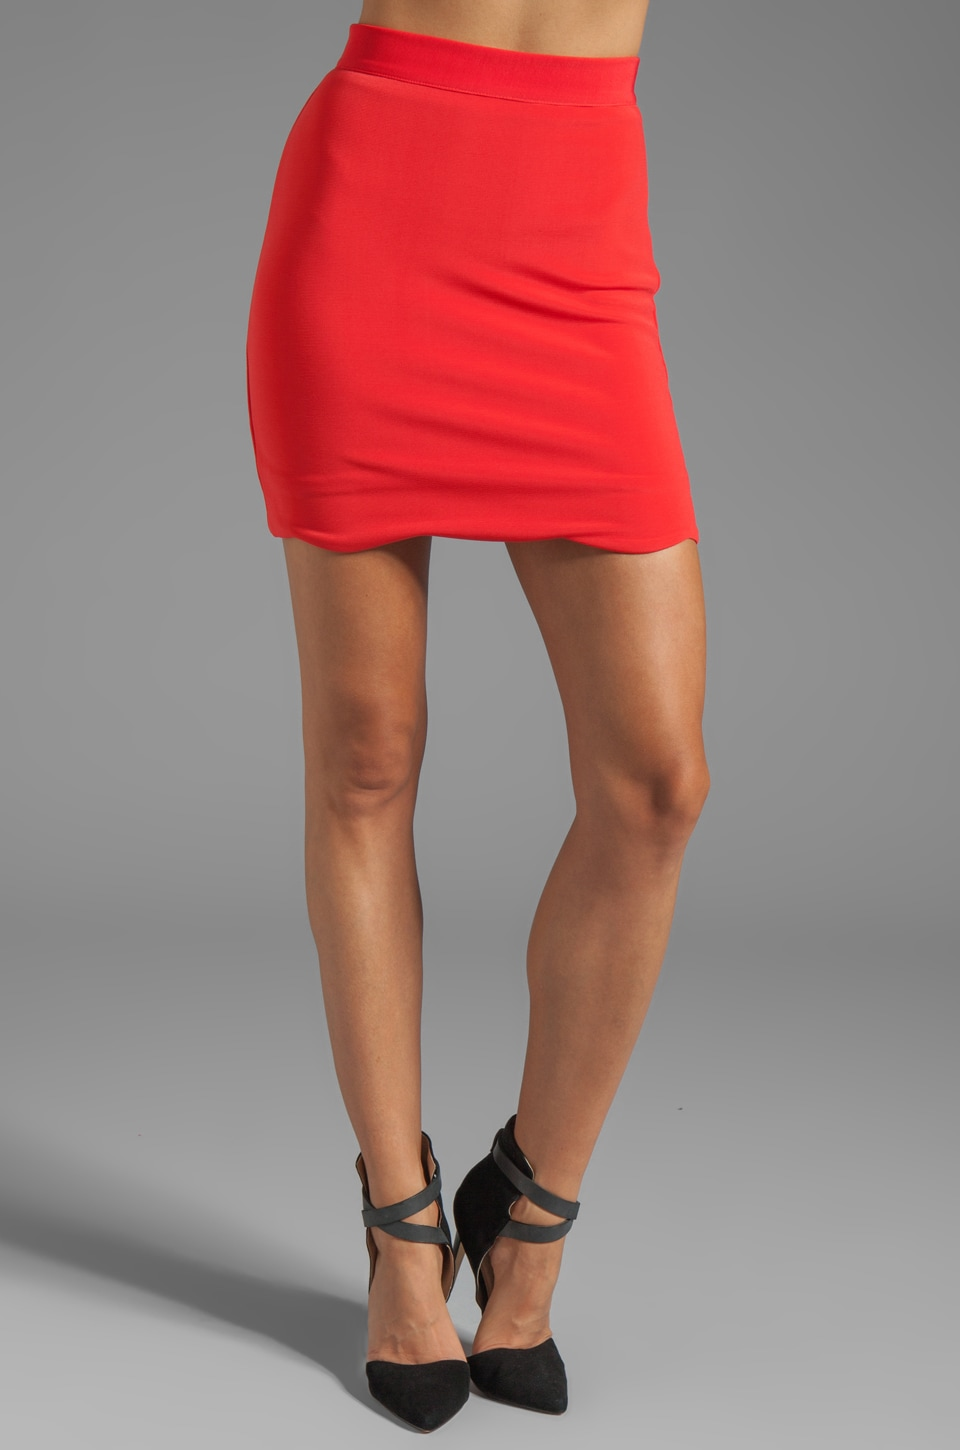 MINKPINK Roxanna Mini Skirt in Red